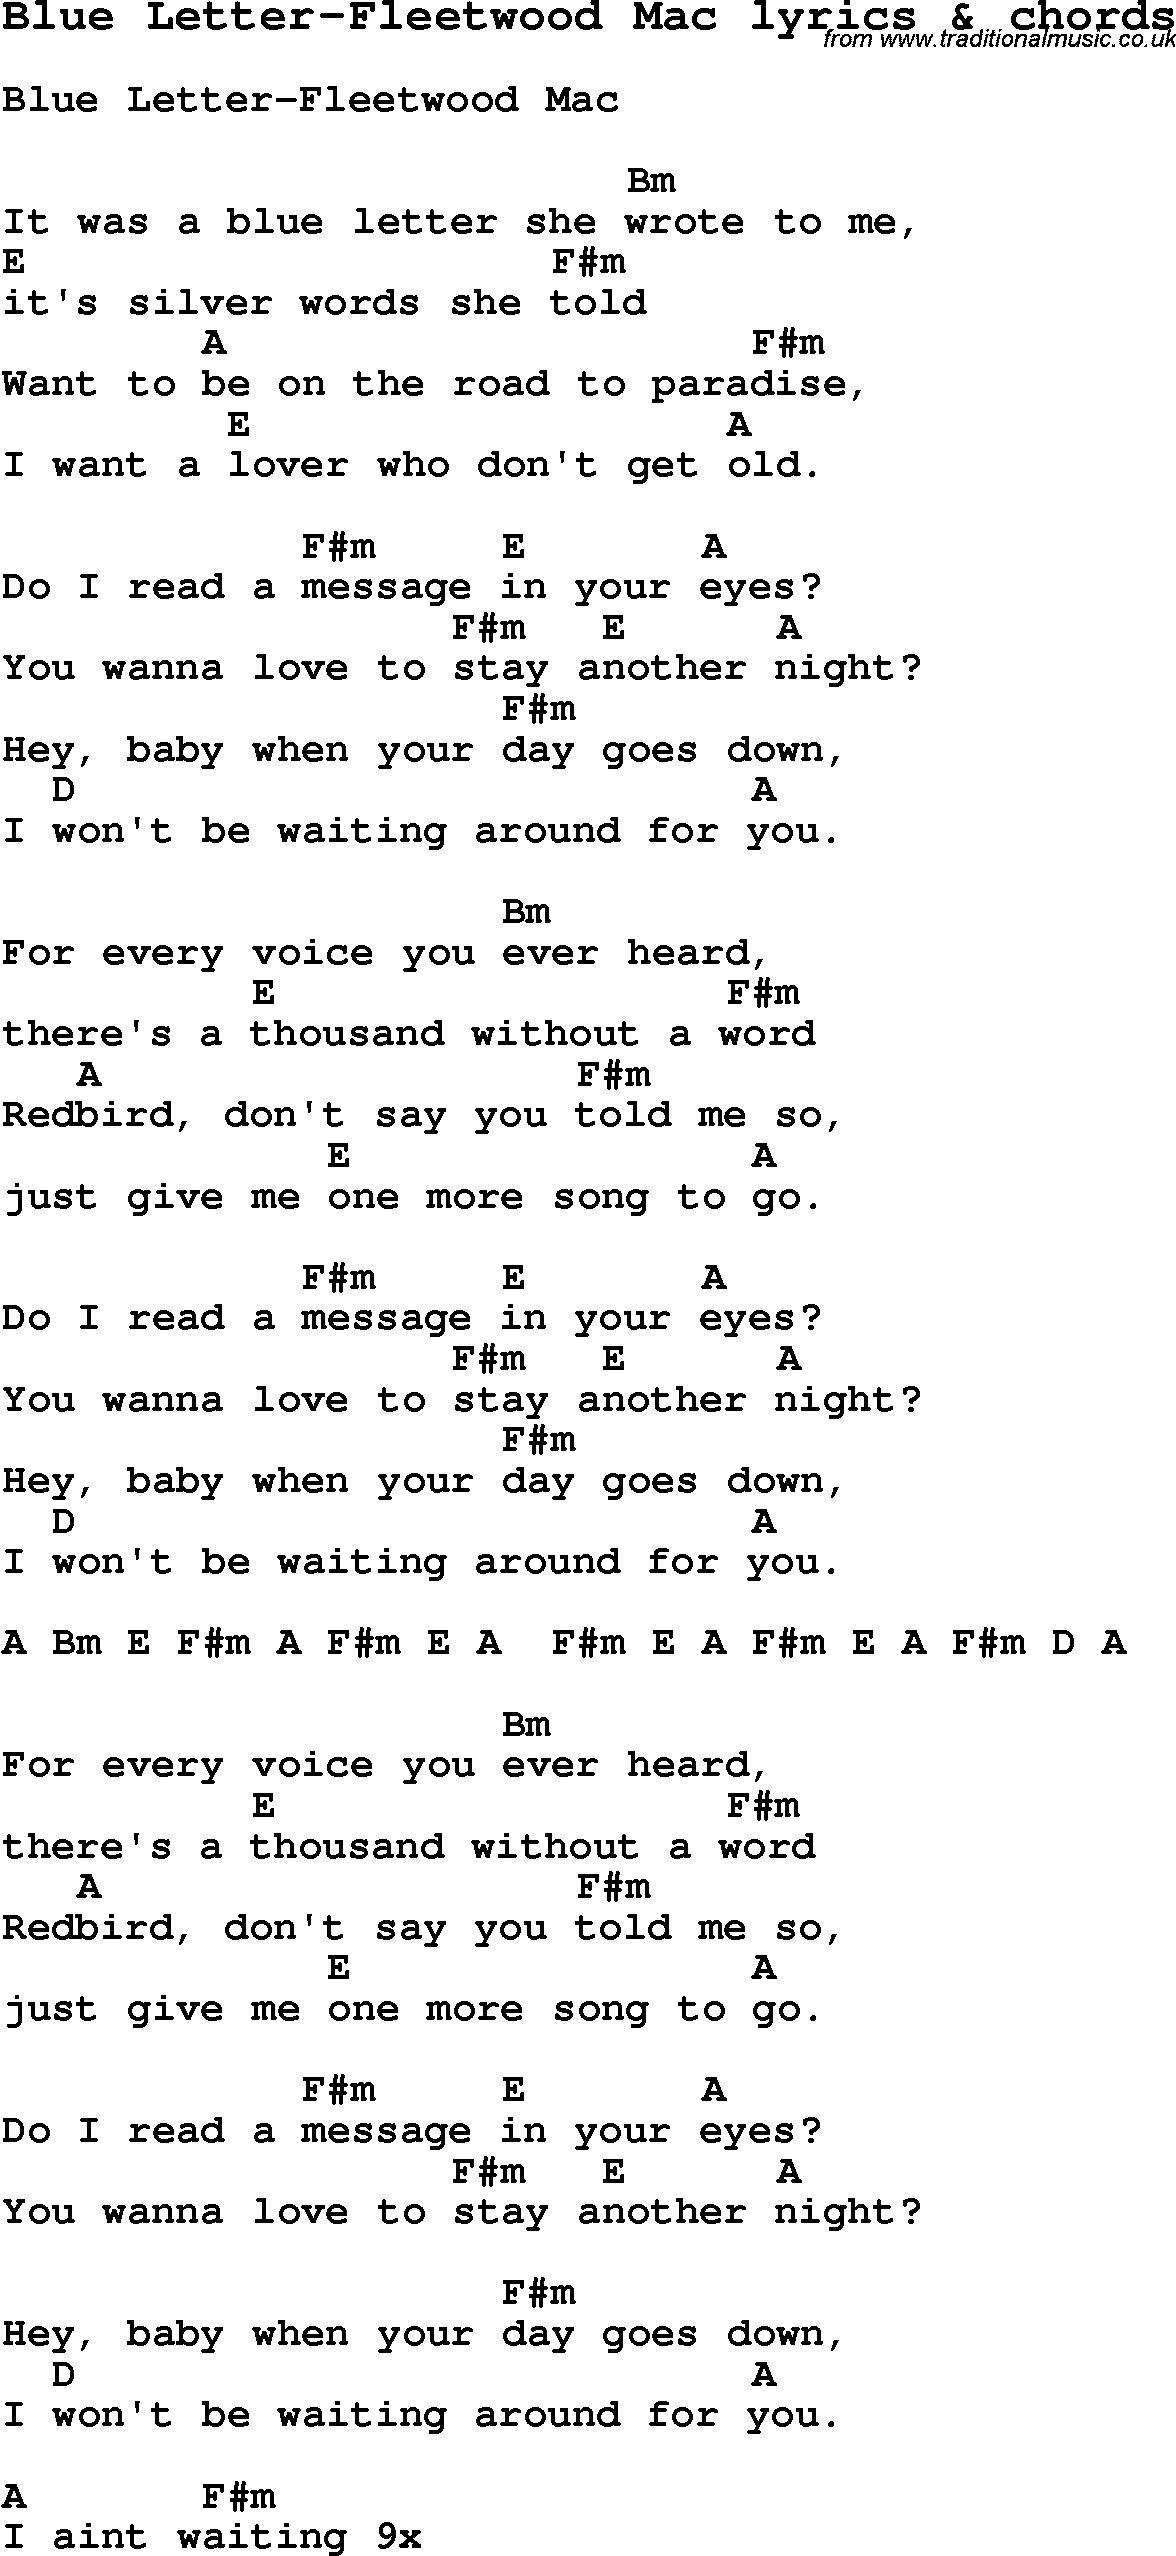 Love Song Lyrics for:Blue Letter Fleetwood Mac with chords.